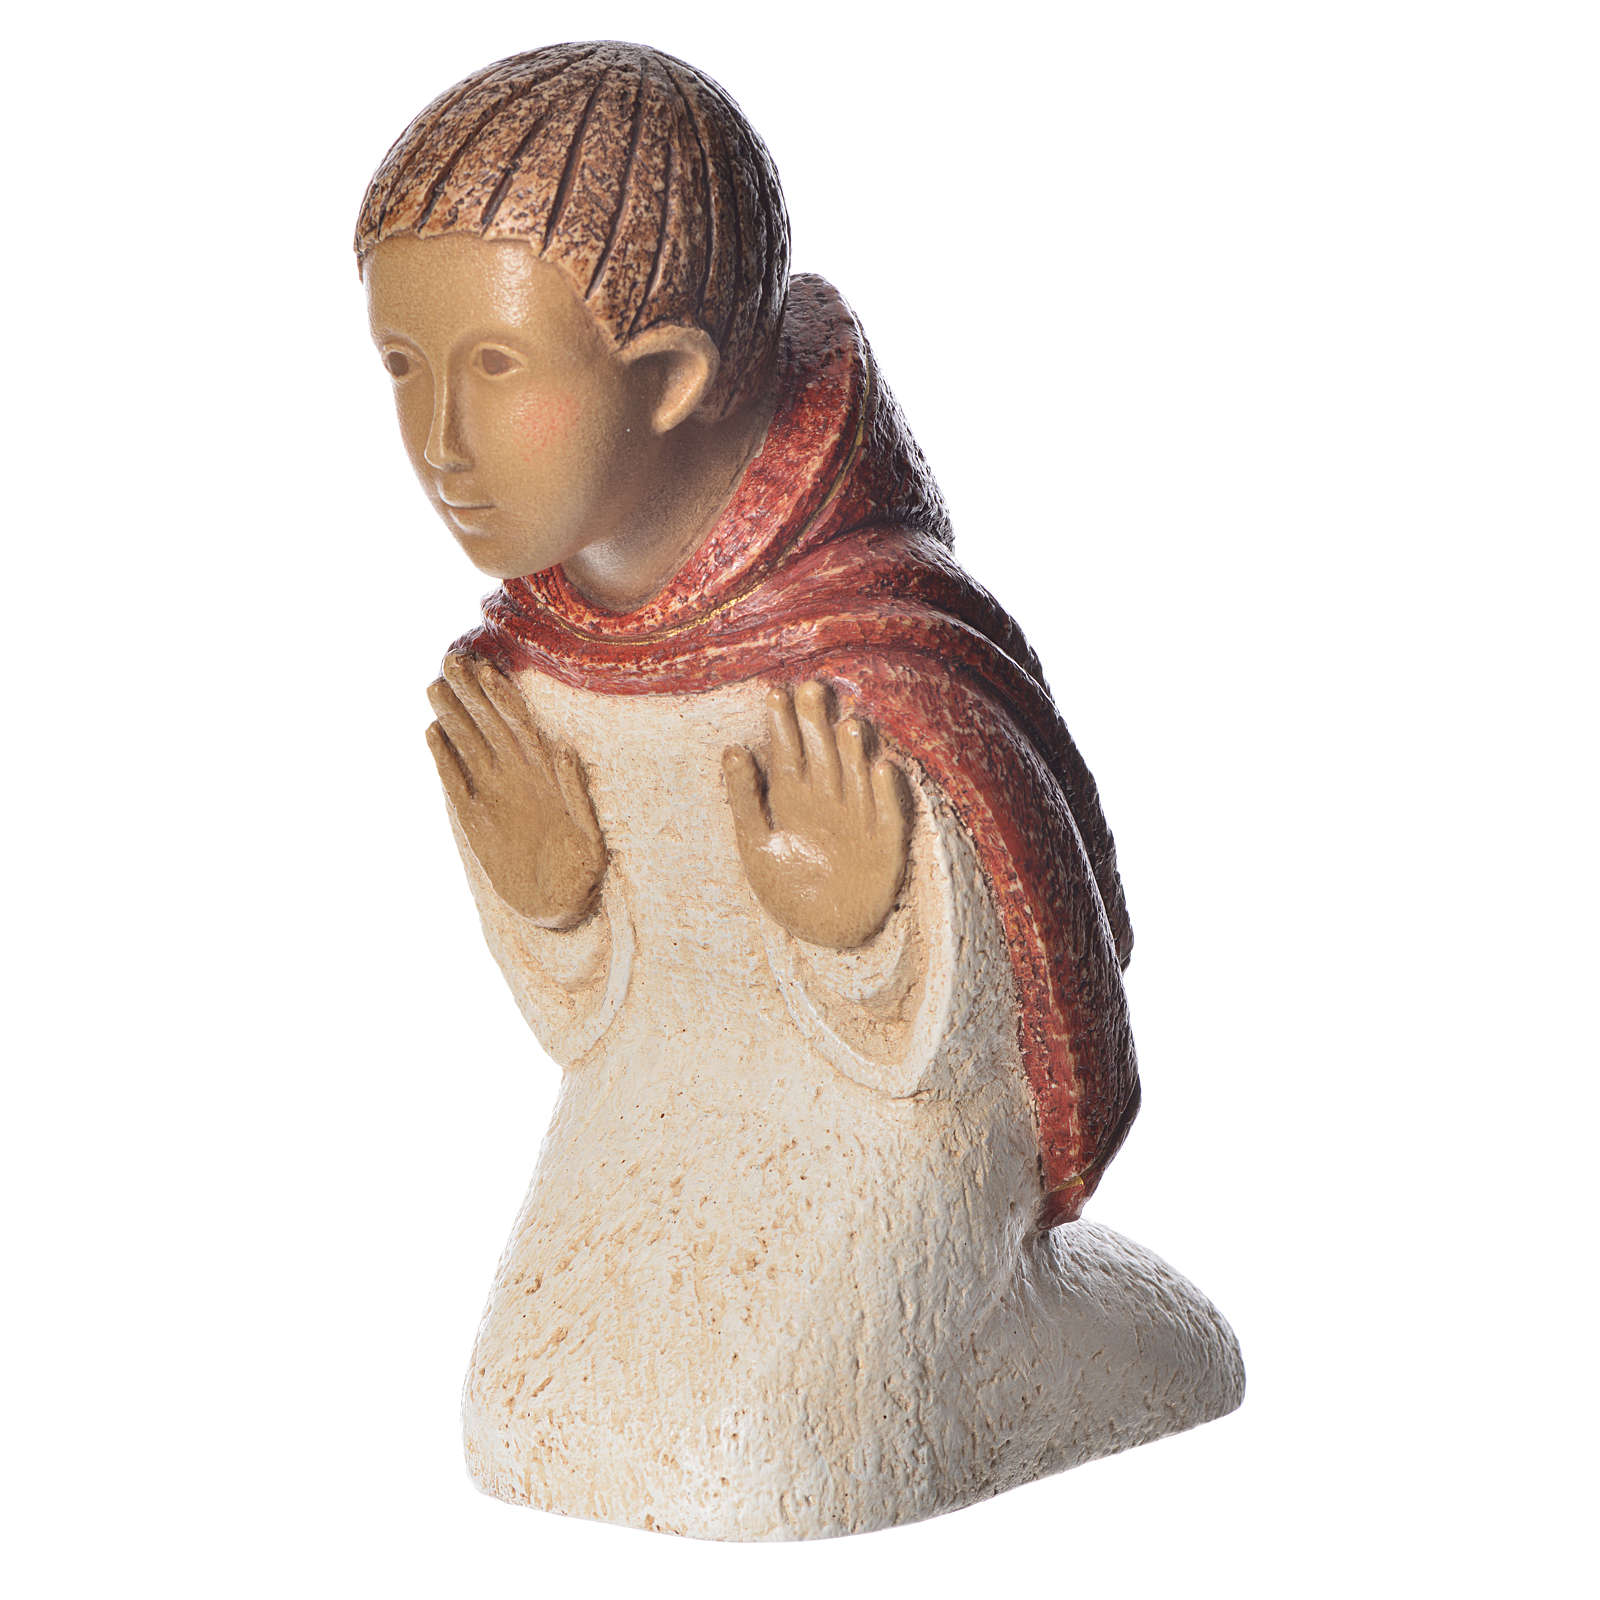 Shepherd in contemplation, red dress, rural crèche 4